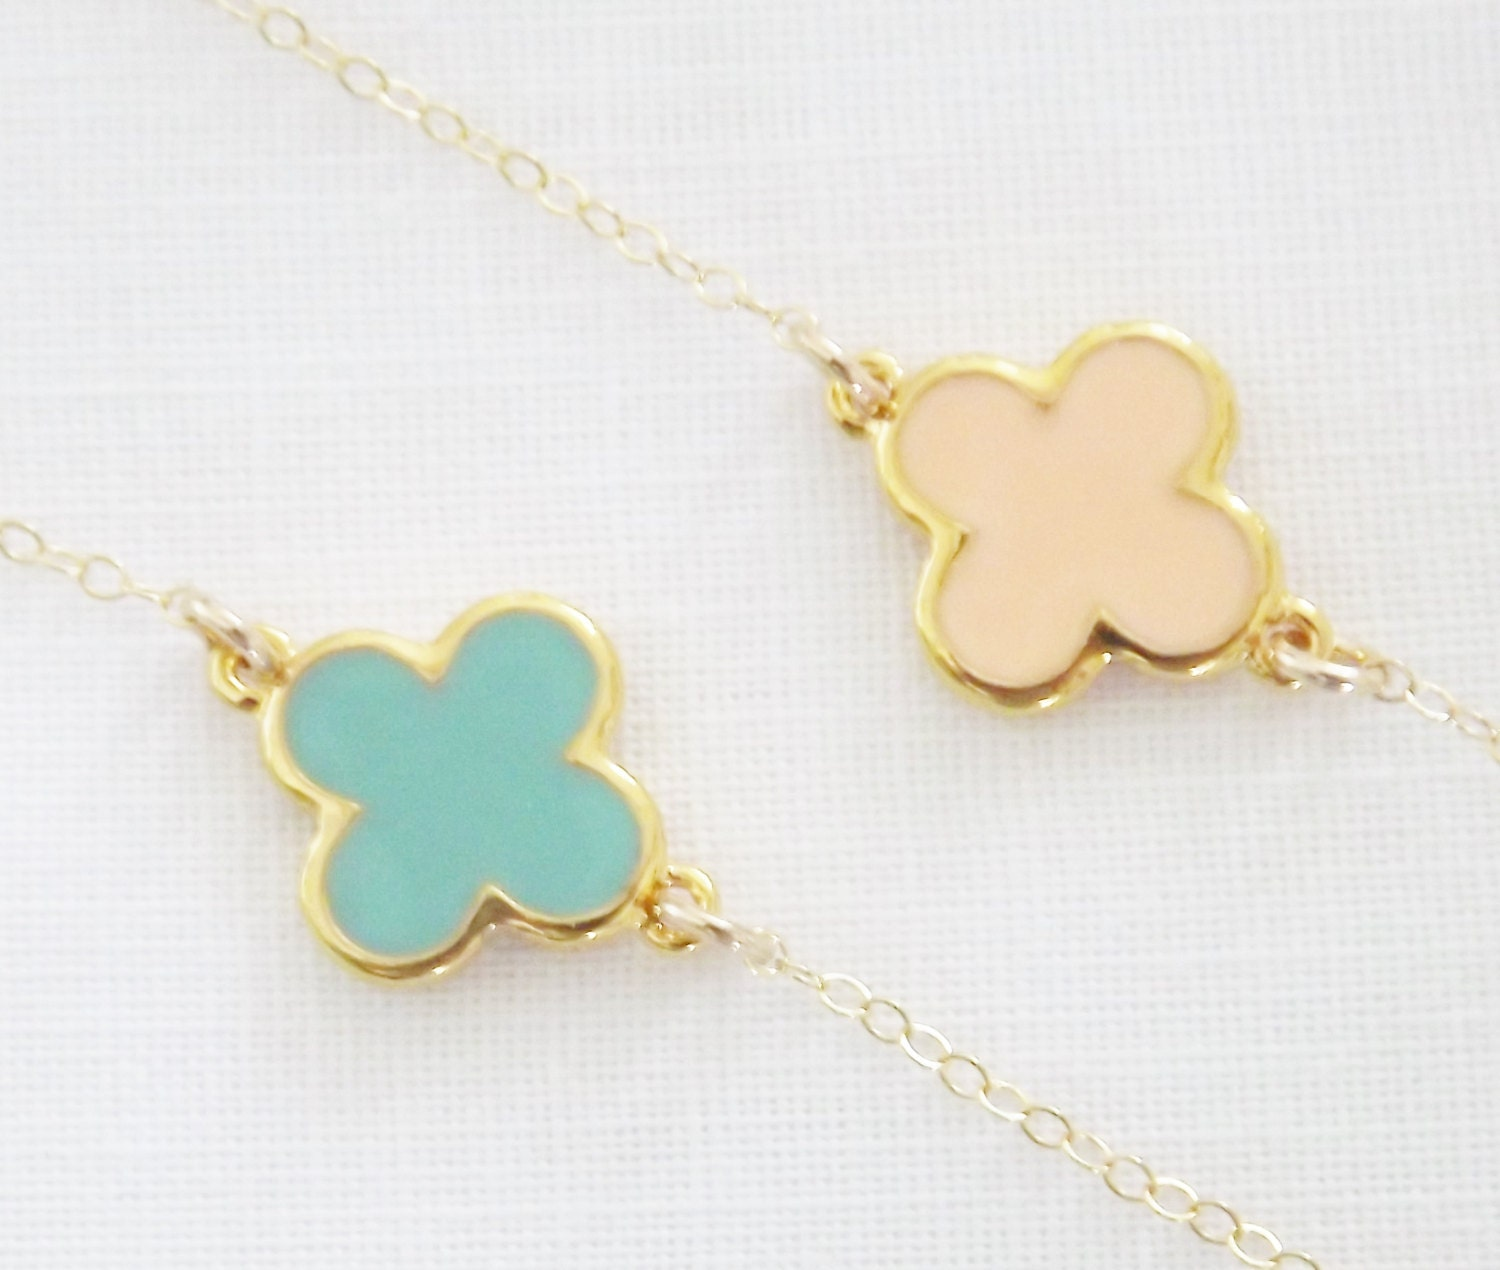 Mint Green Clover Necklace - 14k Gold Filled Chain - Light Coral Peach - Quatrefoil - PinkTwig